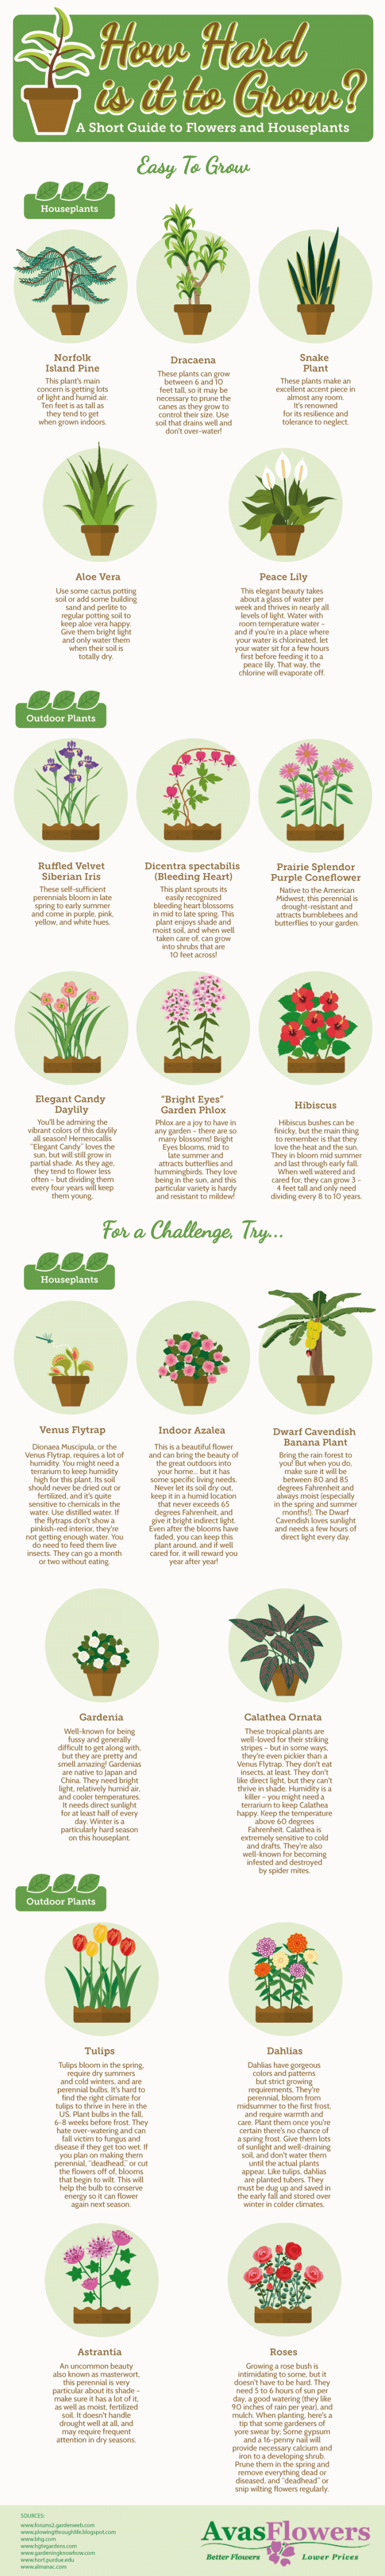 Your Guide to Growing Flowers and Houseplants Infographic